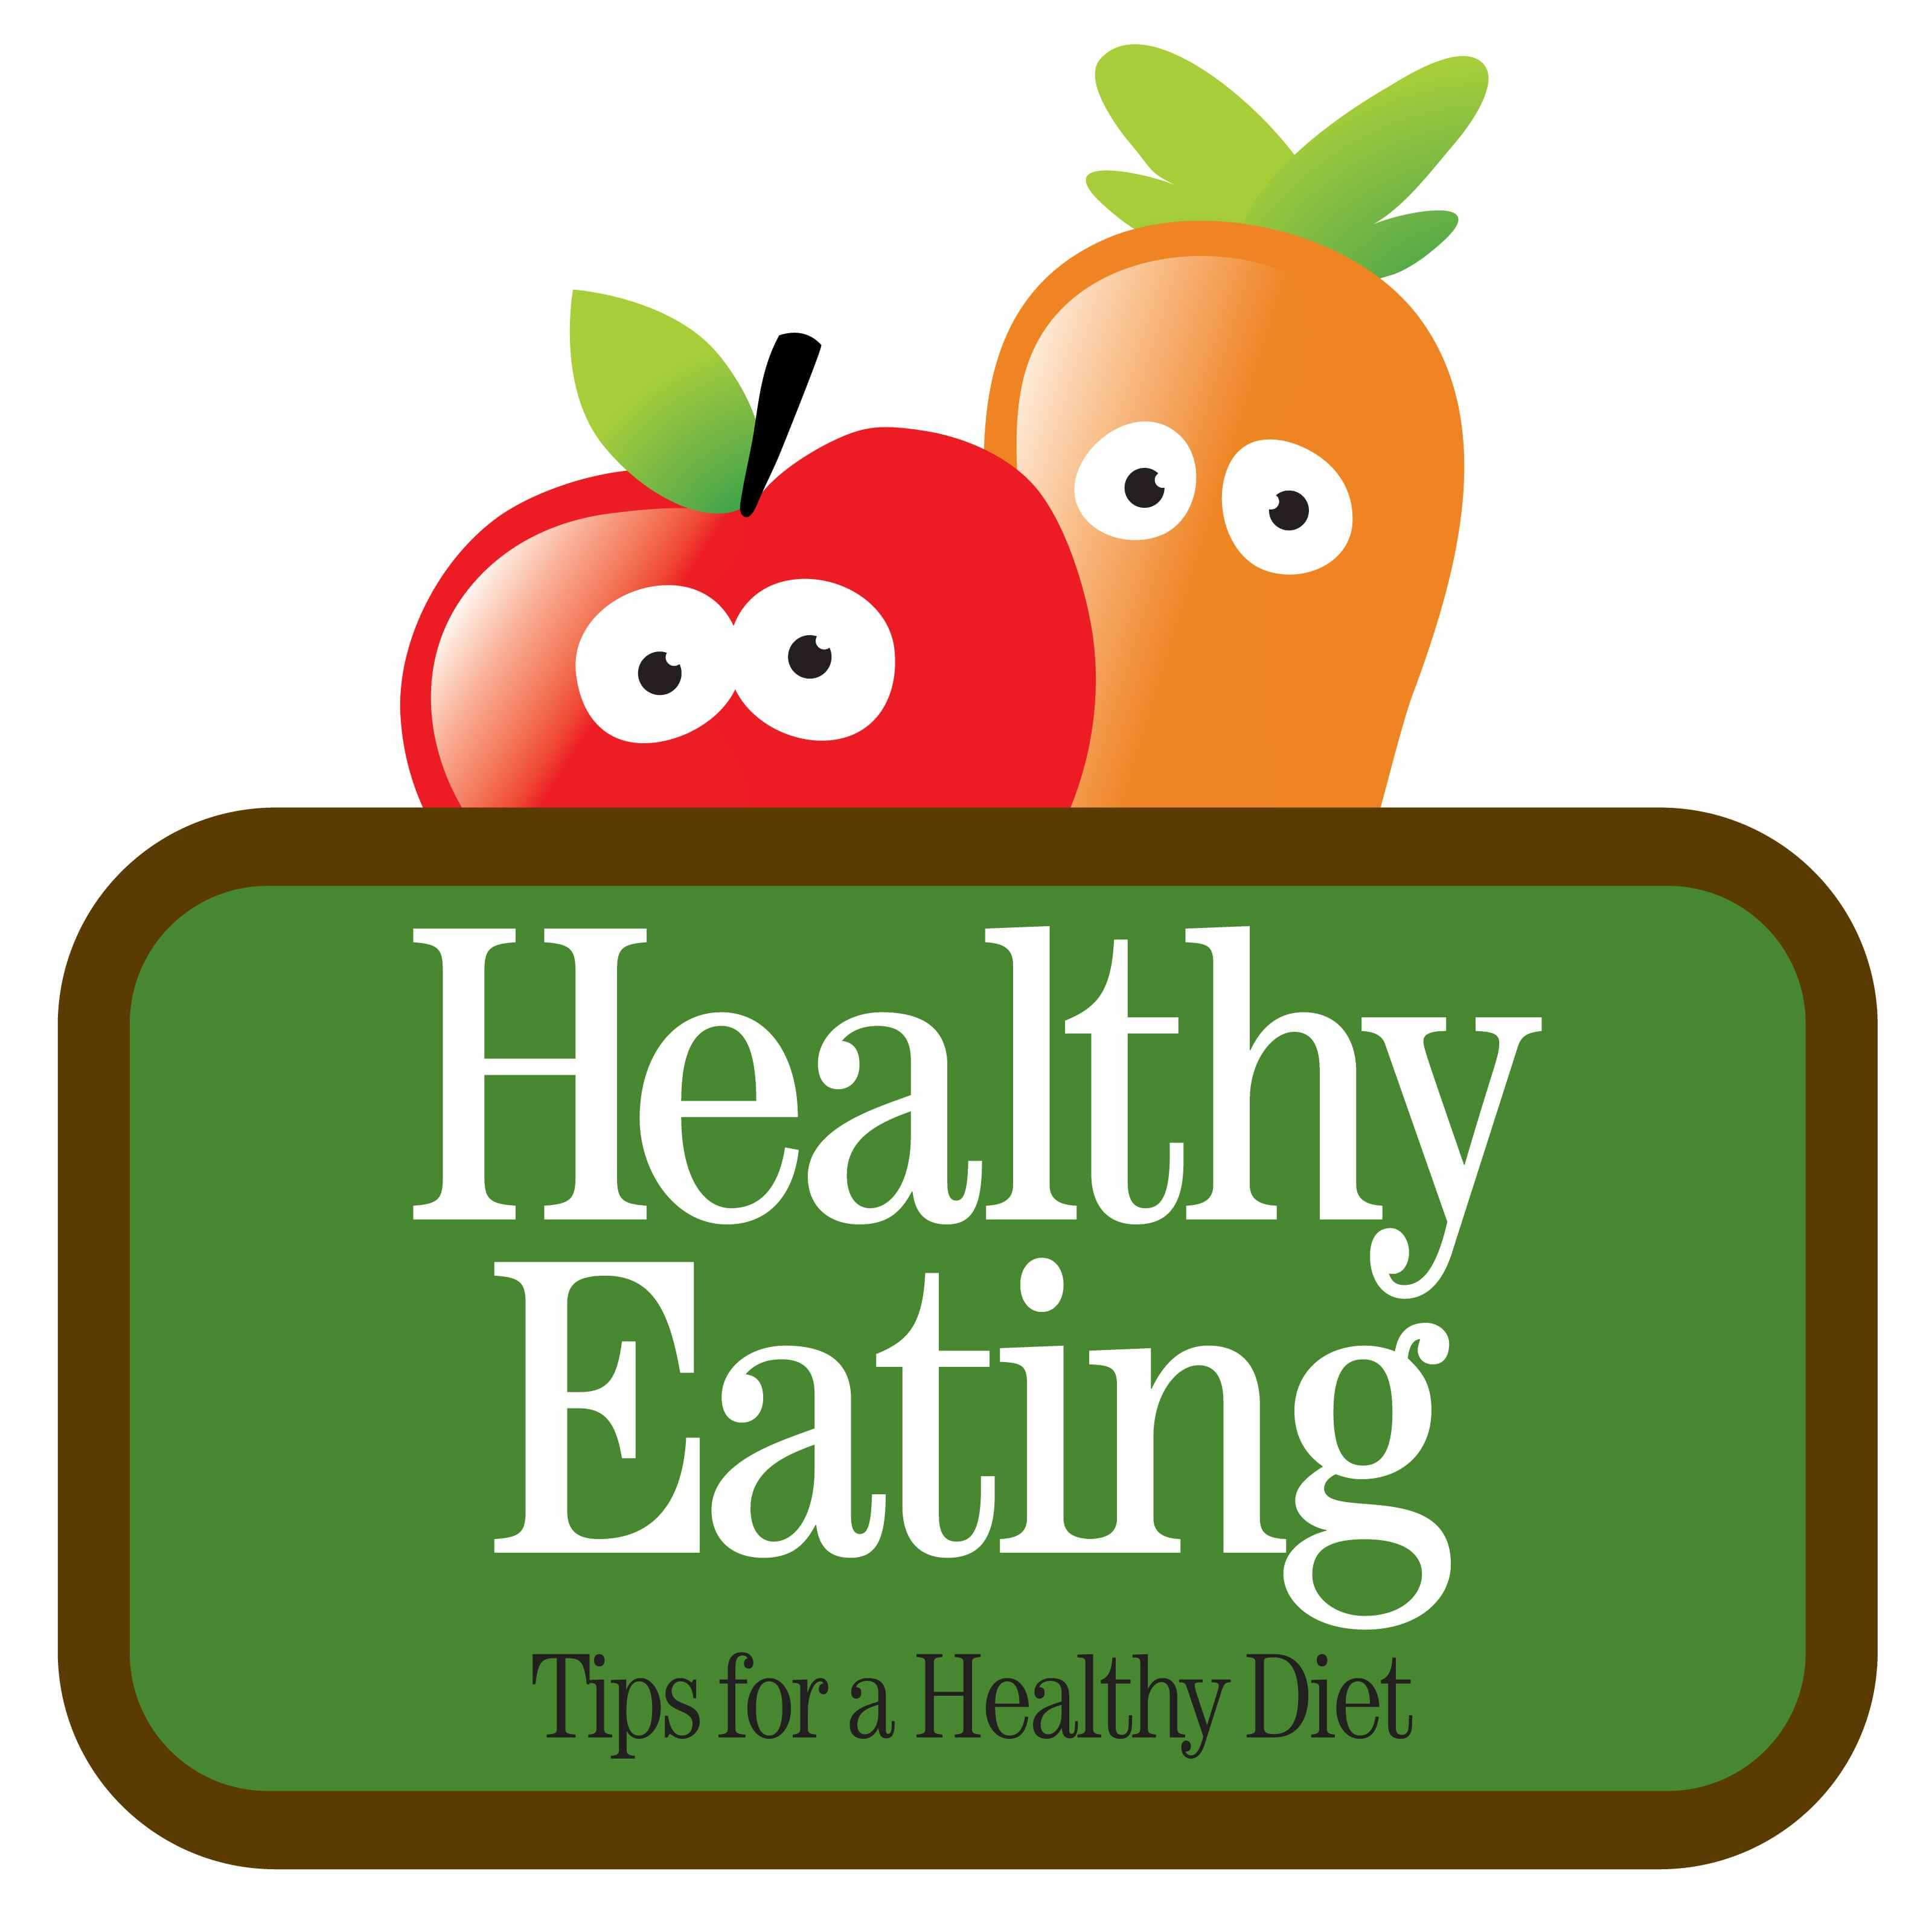 Nutrition clipart health conscious. Eating healthy at school